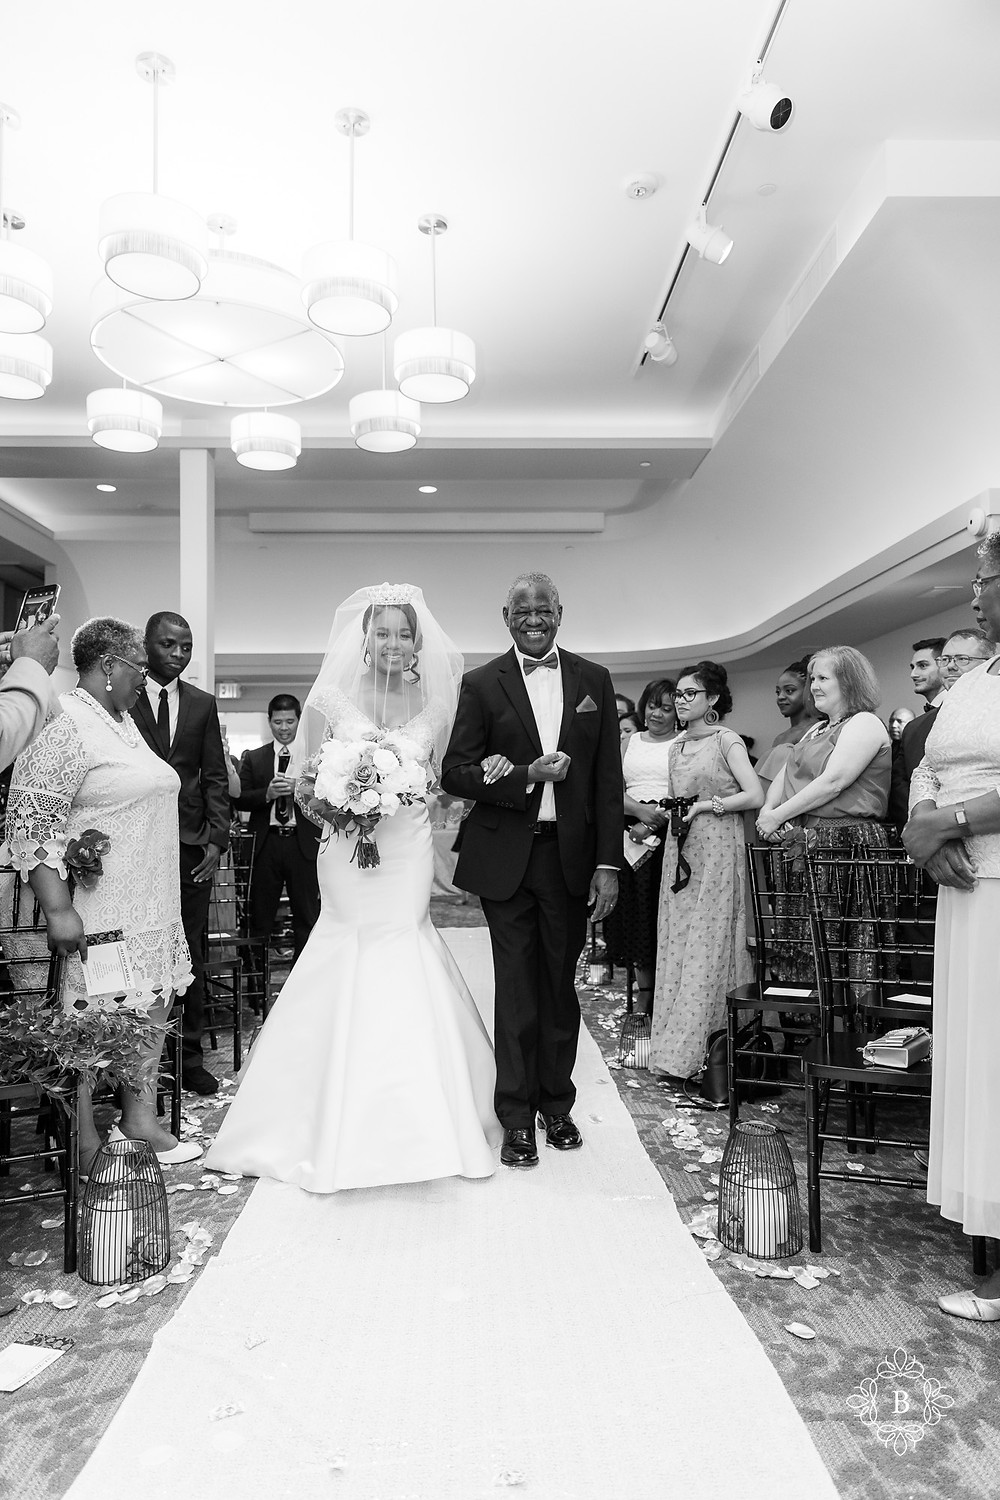 Northern Virginia Culpeper Center and Suites wedding ceremony bride walking down the aisle